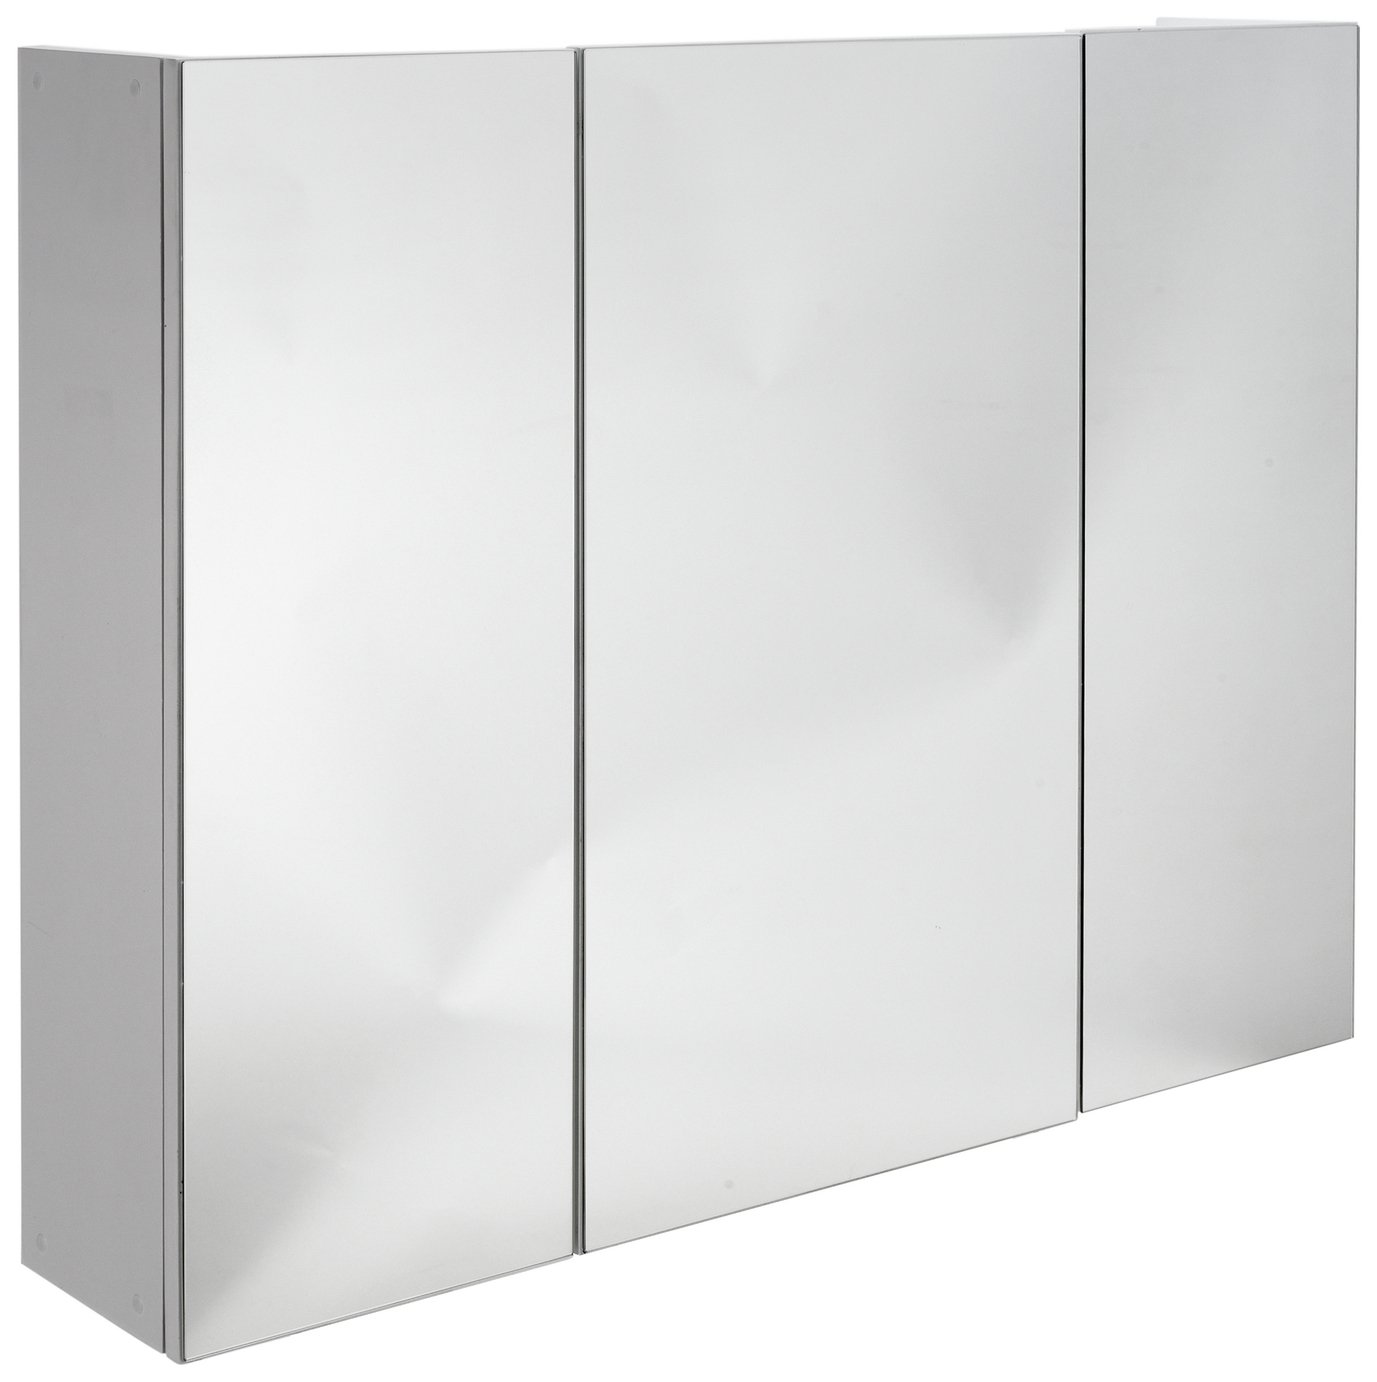 3 Door Mirrored Bathroom Cabinet Argos Home 3 Door Mirrored Bathroom Cabinet 4825470